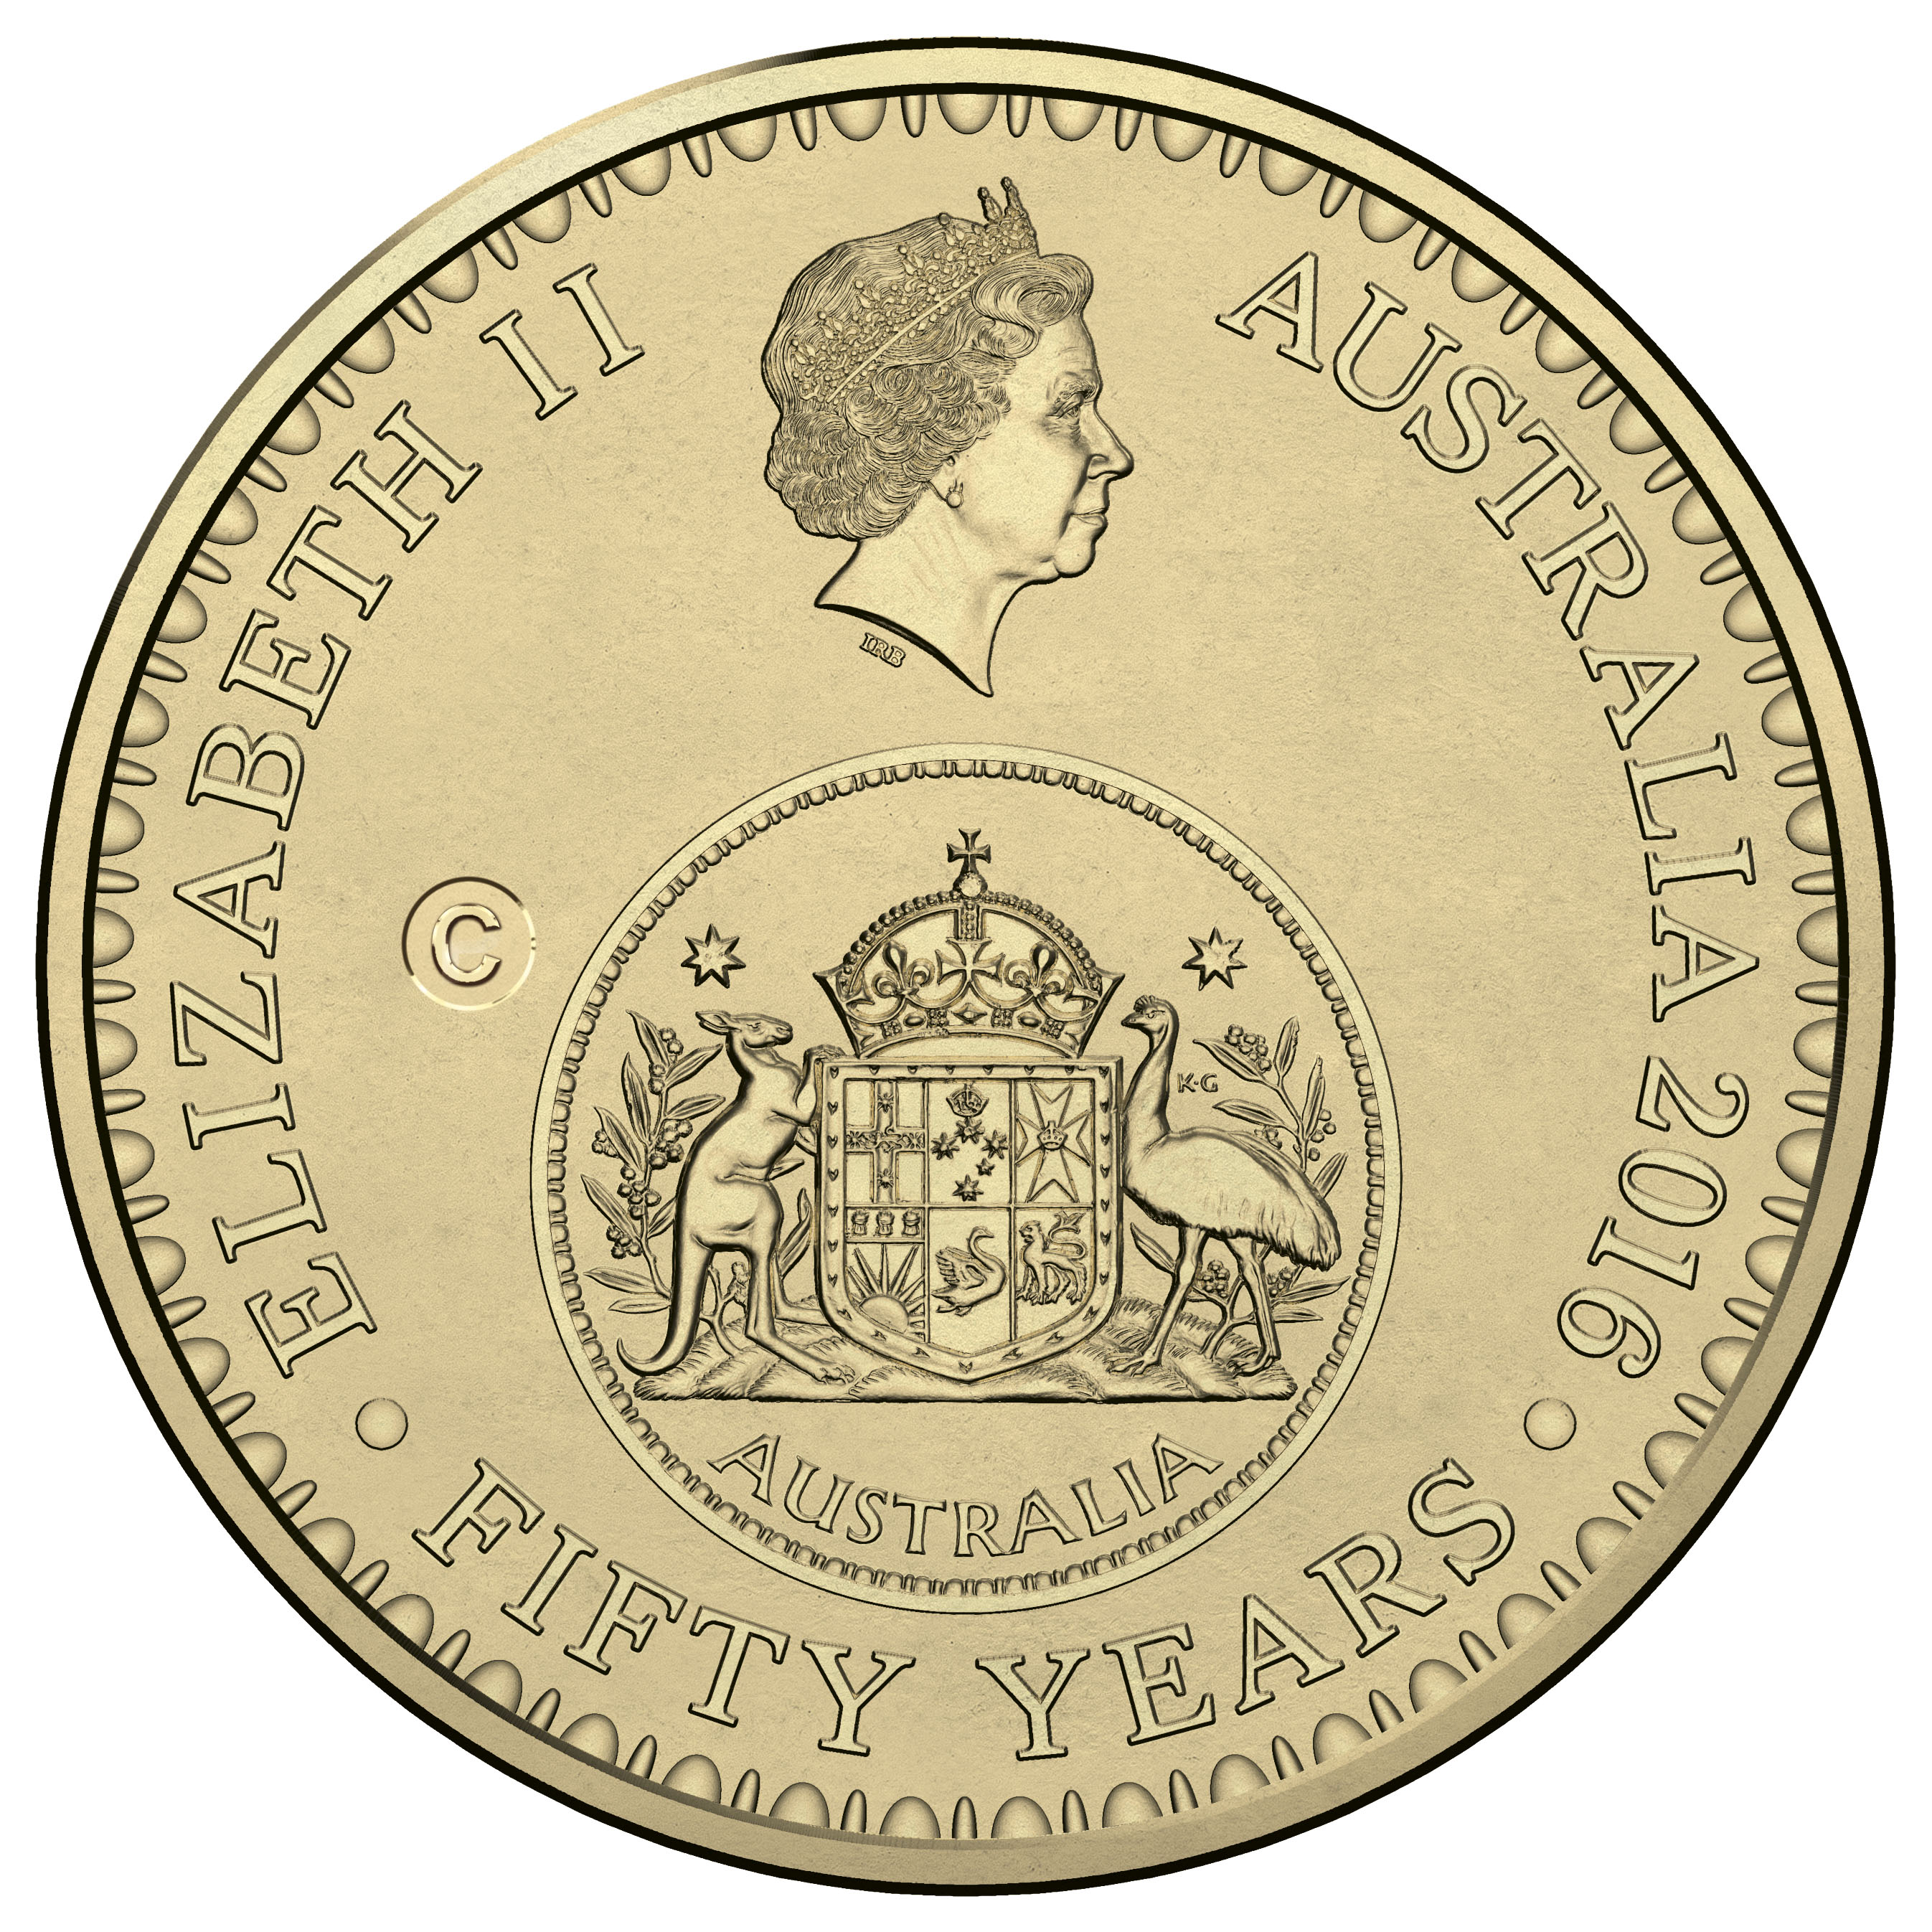 2016 $1 'C' Canberra Counterstamp Coin obverse, Royal Australian Mint